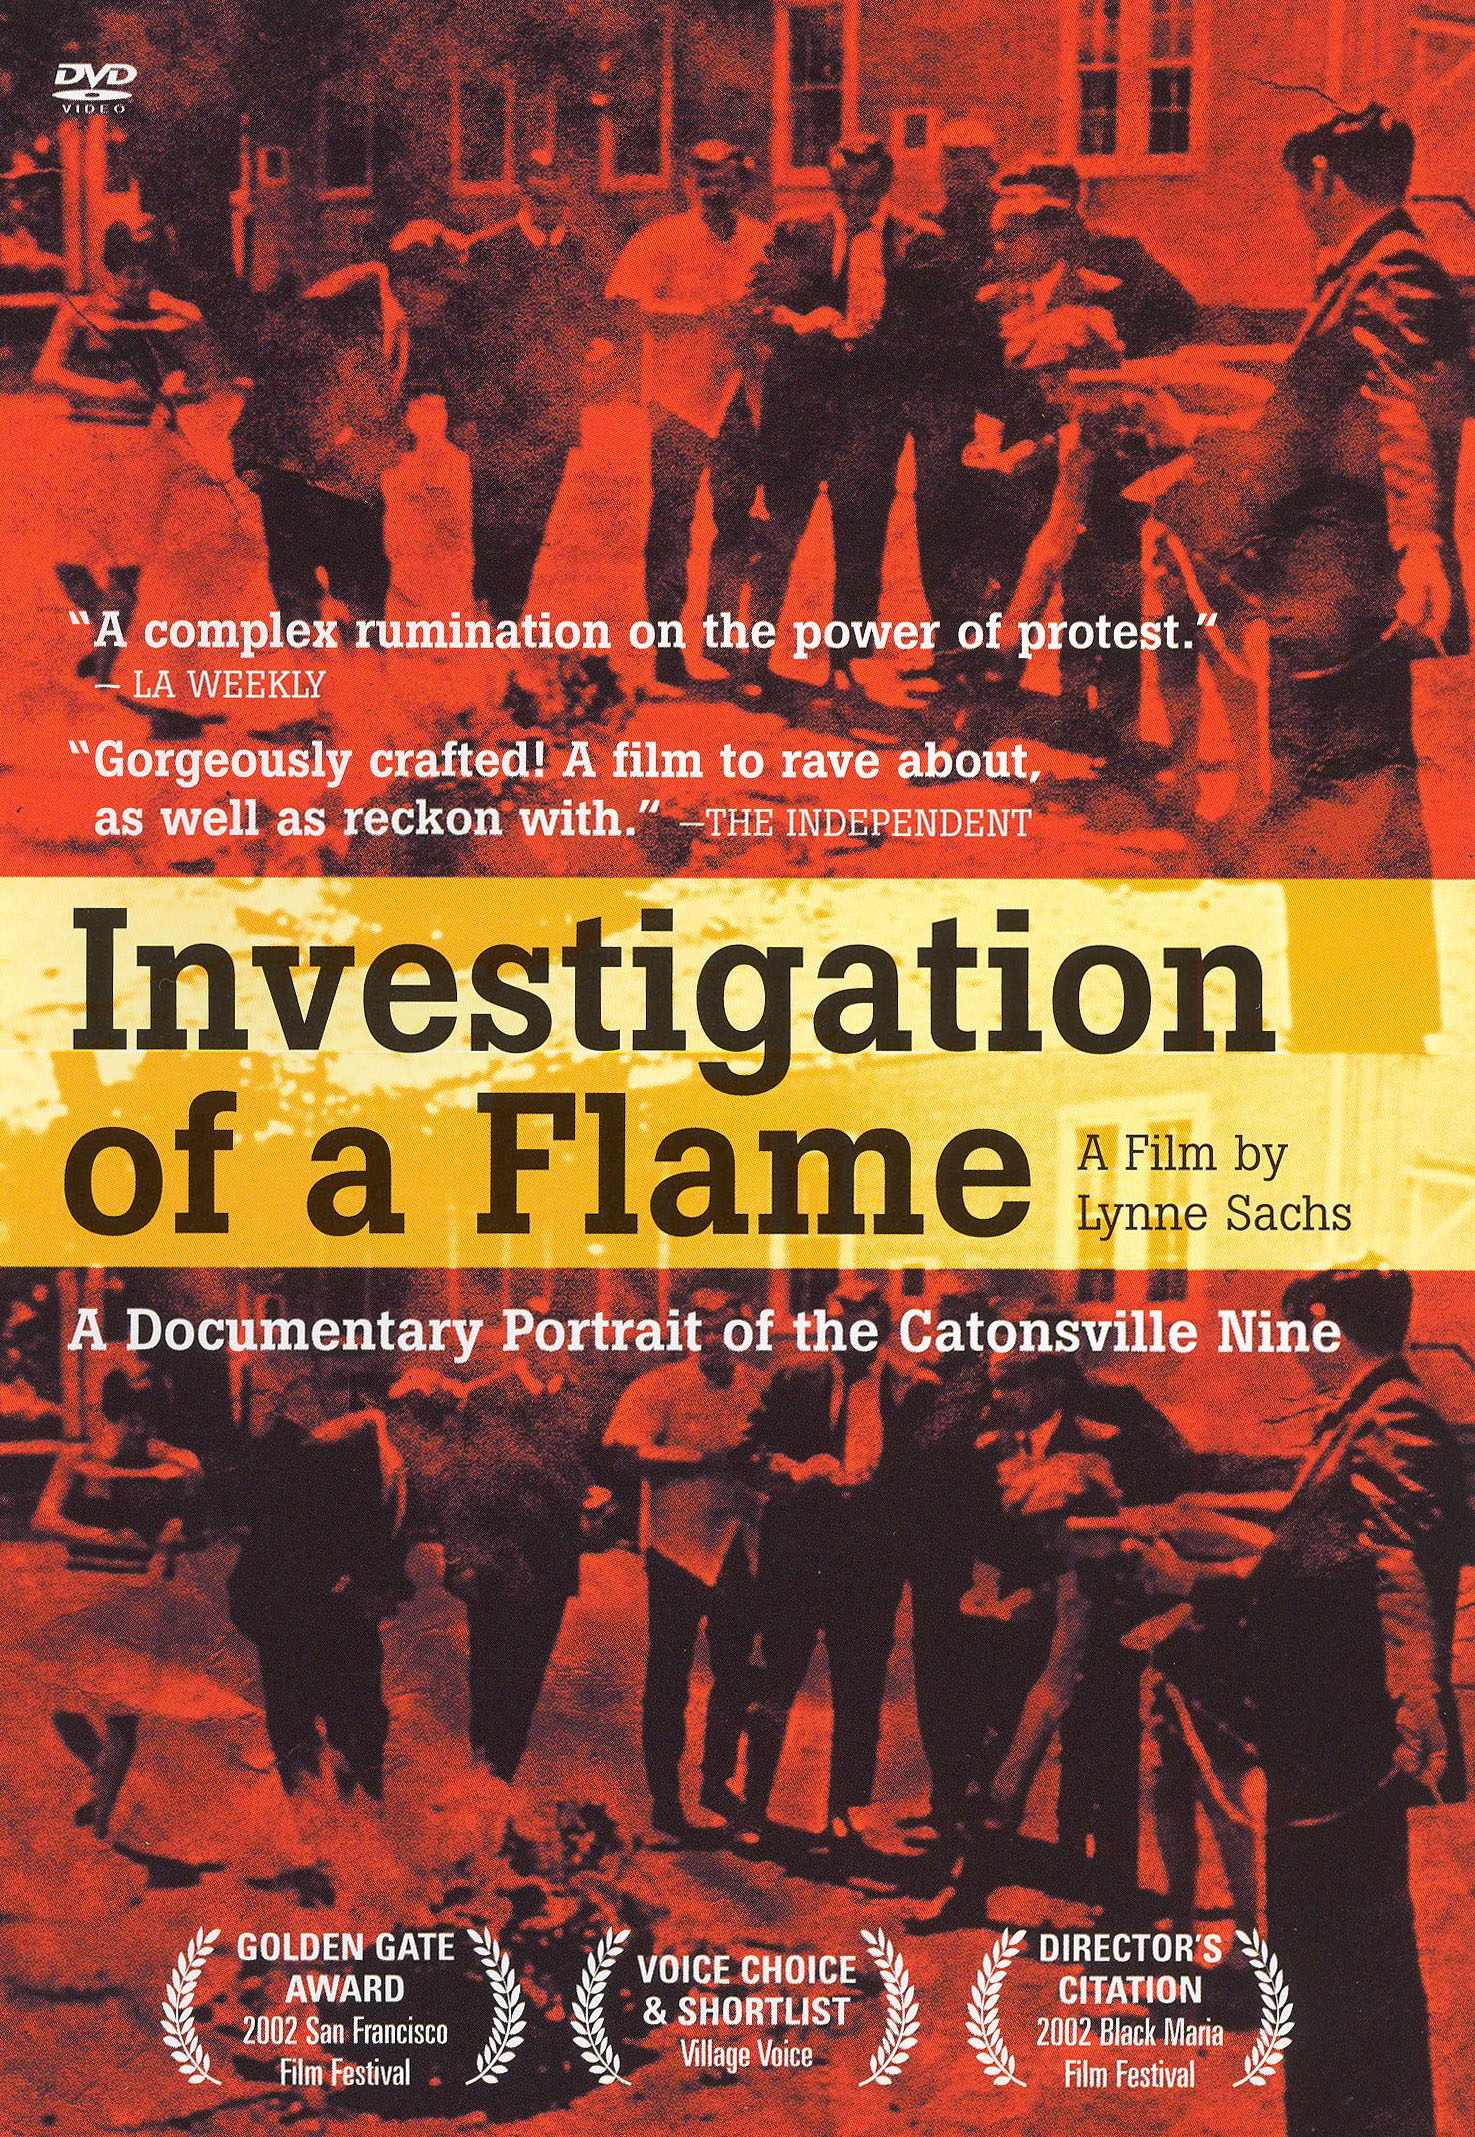 Investigation of a Flame: A Documentary Portrait of the Catonsville Nine